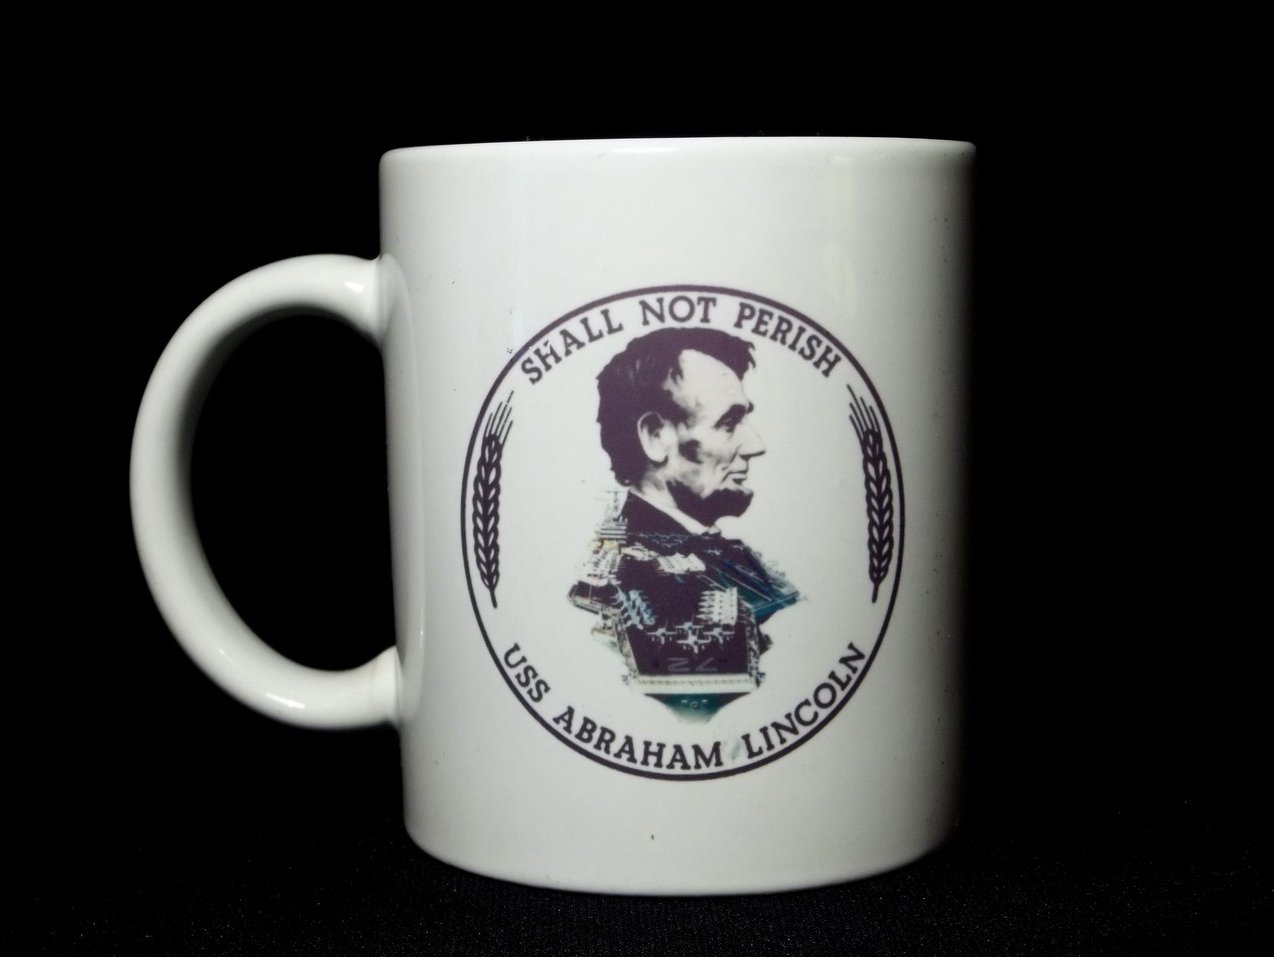 Image 1 of USS Abraham Lincoln CVN-72 Coffee Mug 12 Oz